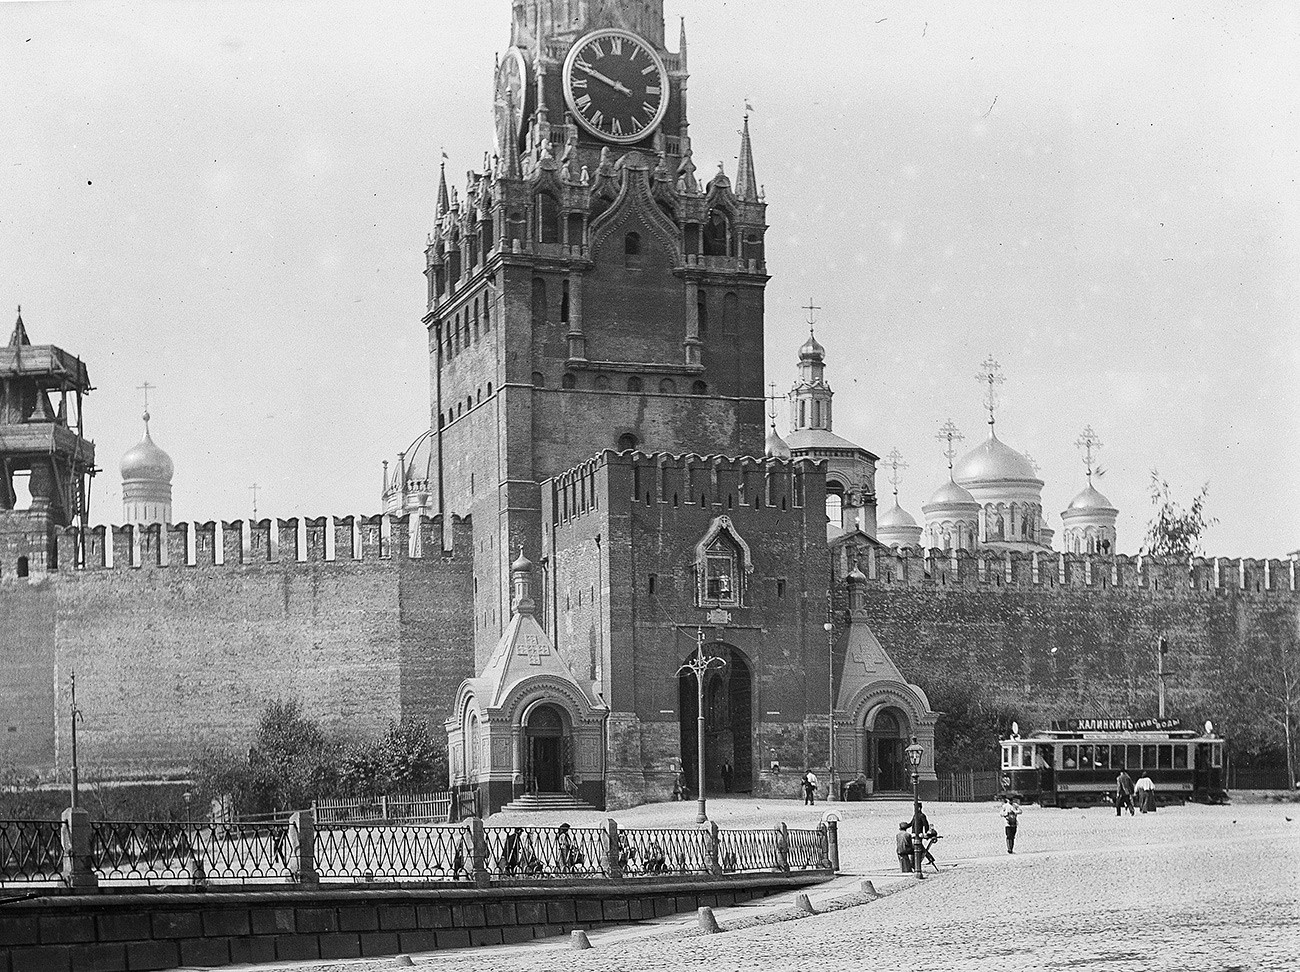 Tram line on the Red Square